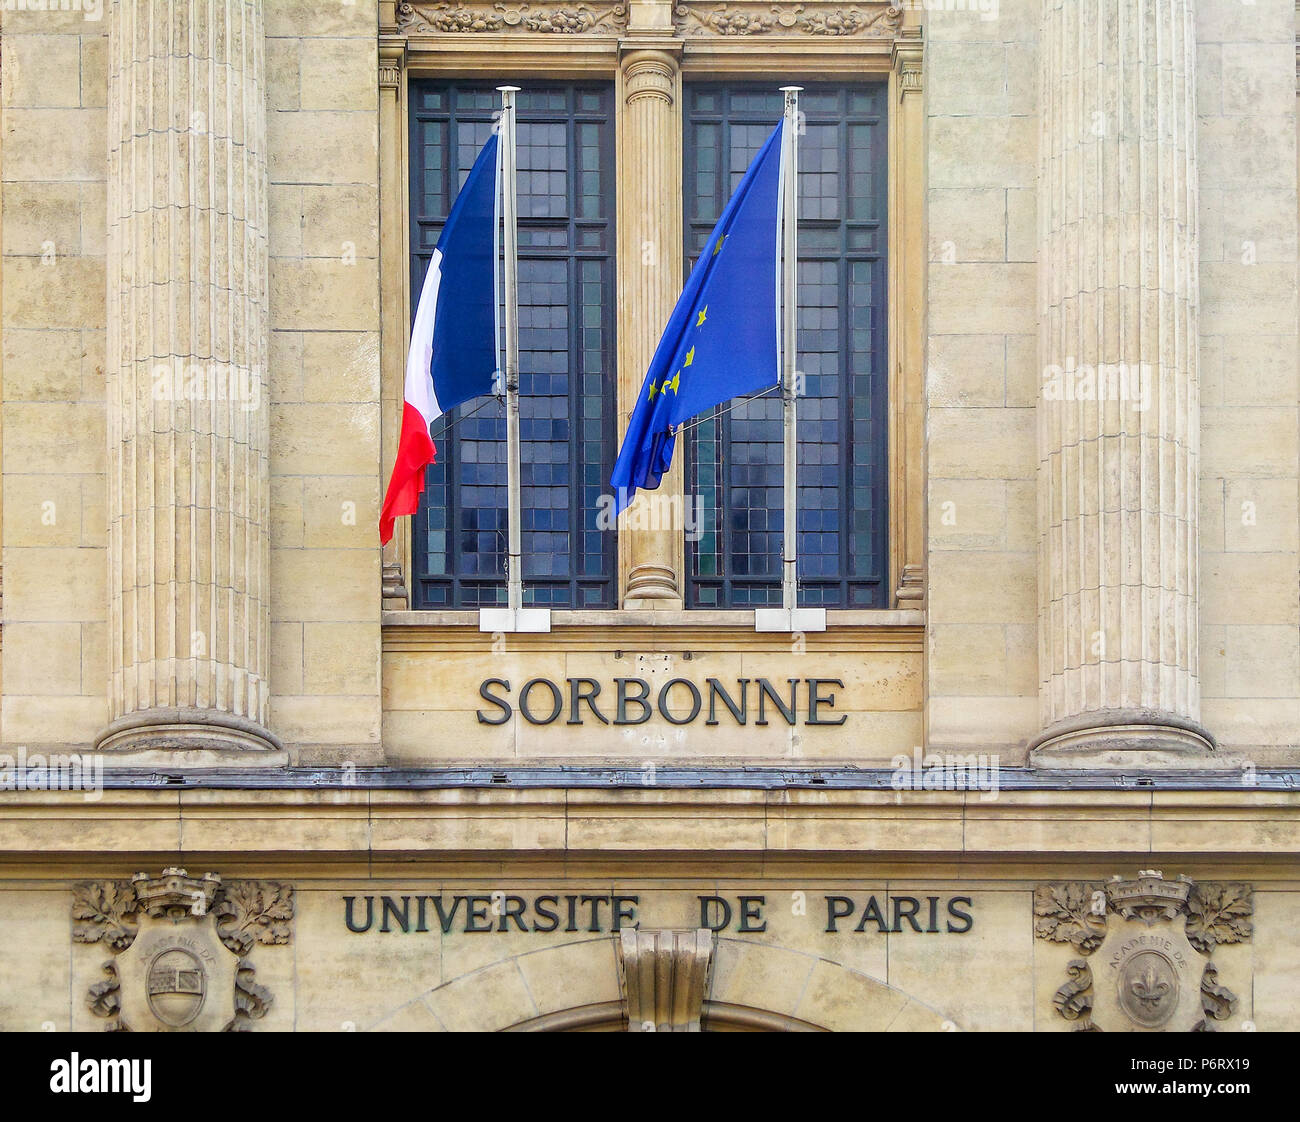 Sorbonne, universite de Paris (meaning university of Paris), written on a wall with the French and European flags - Stock Image